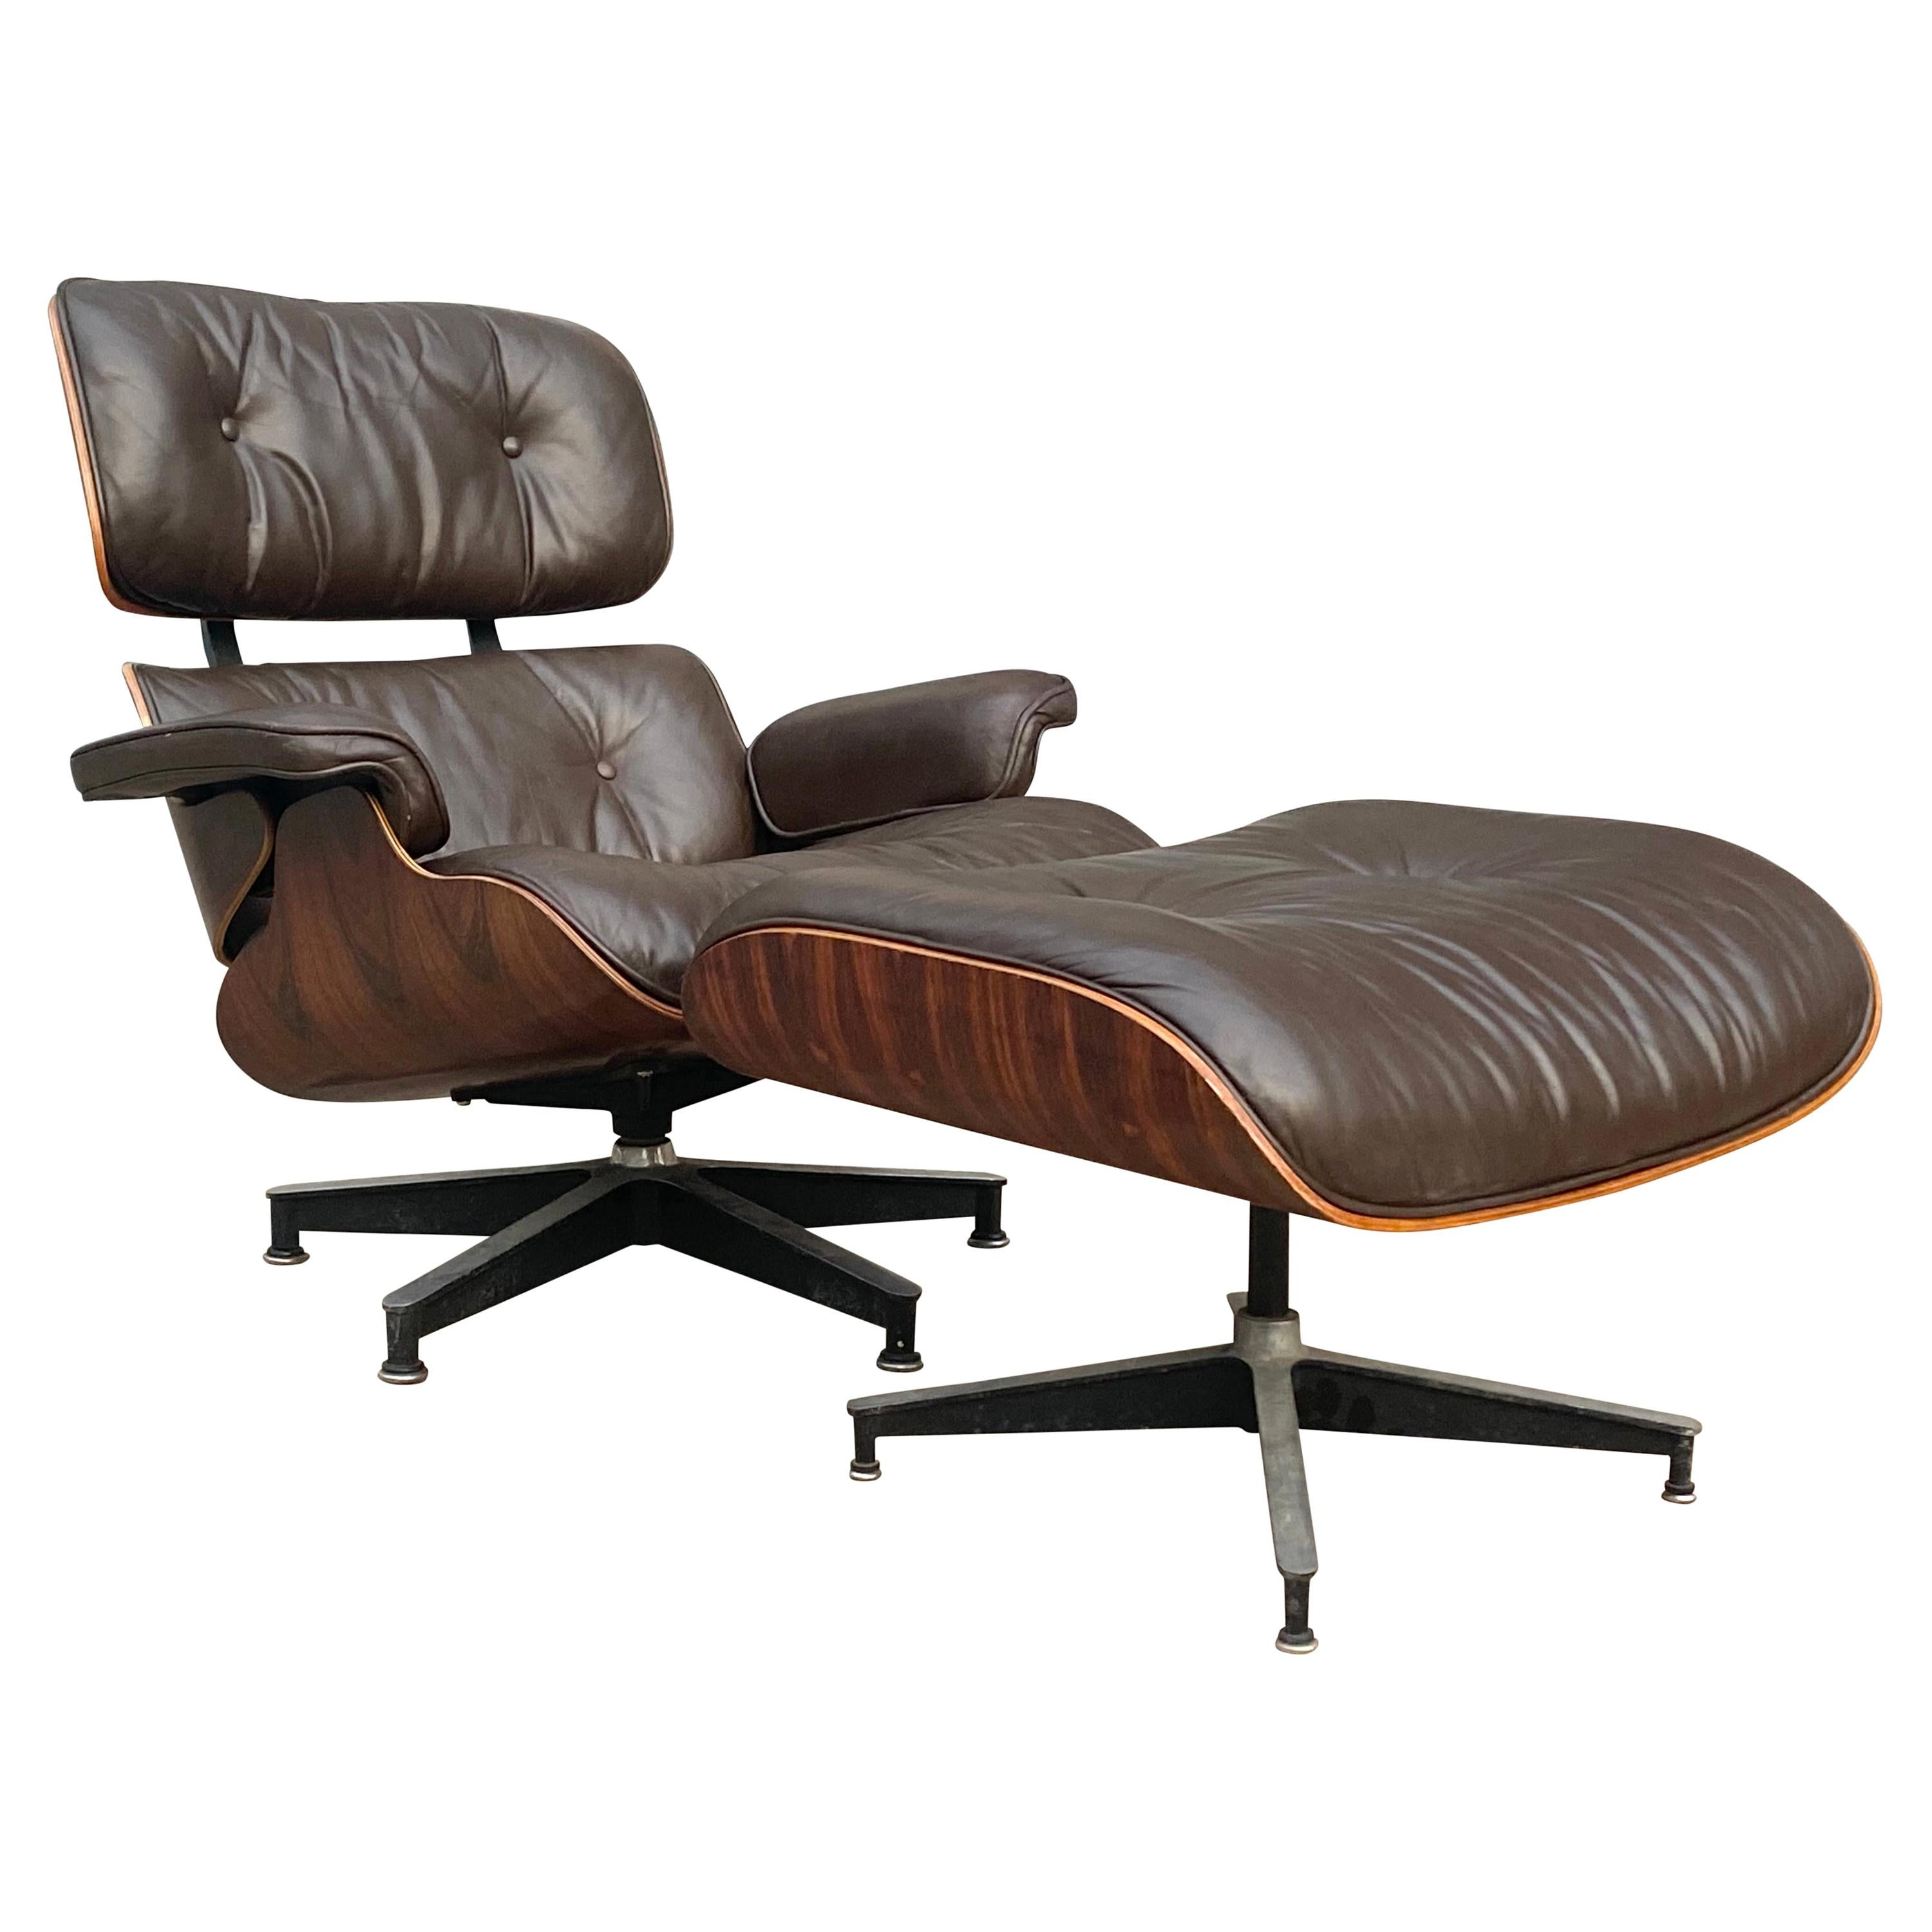 Herman Miller Eames Lounge Chair and Ottoman with Brown Leather